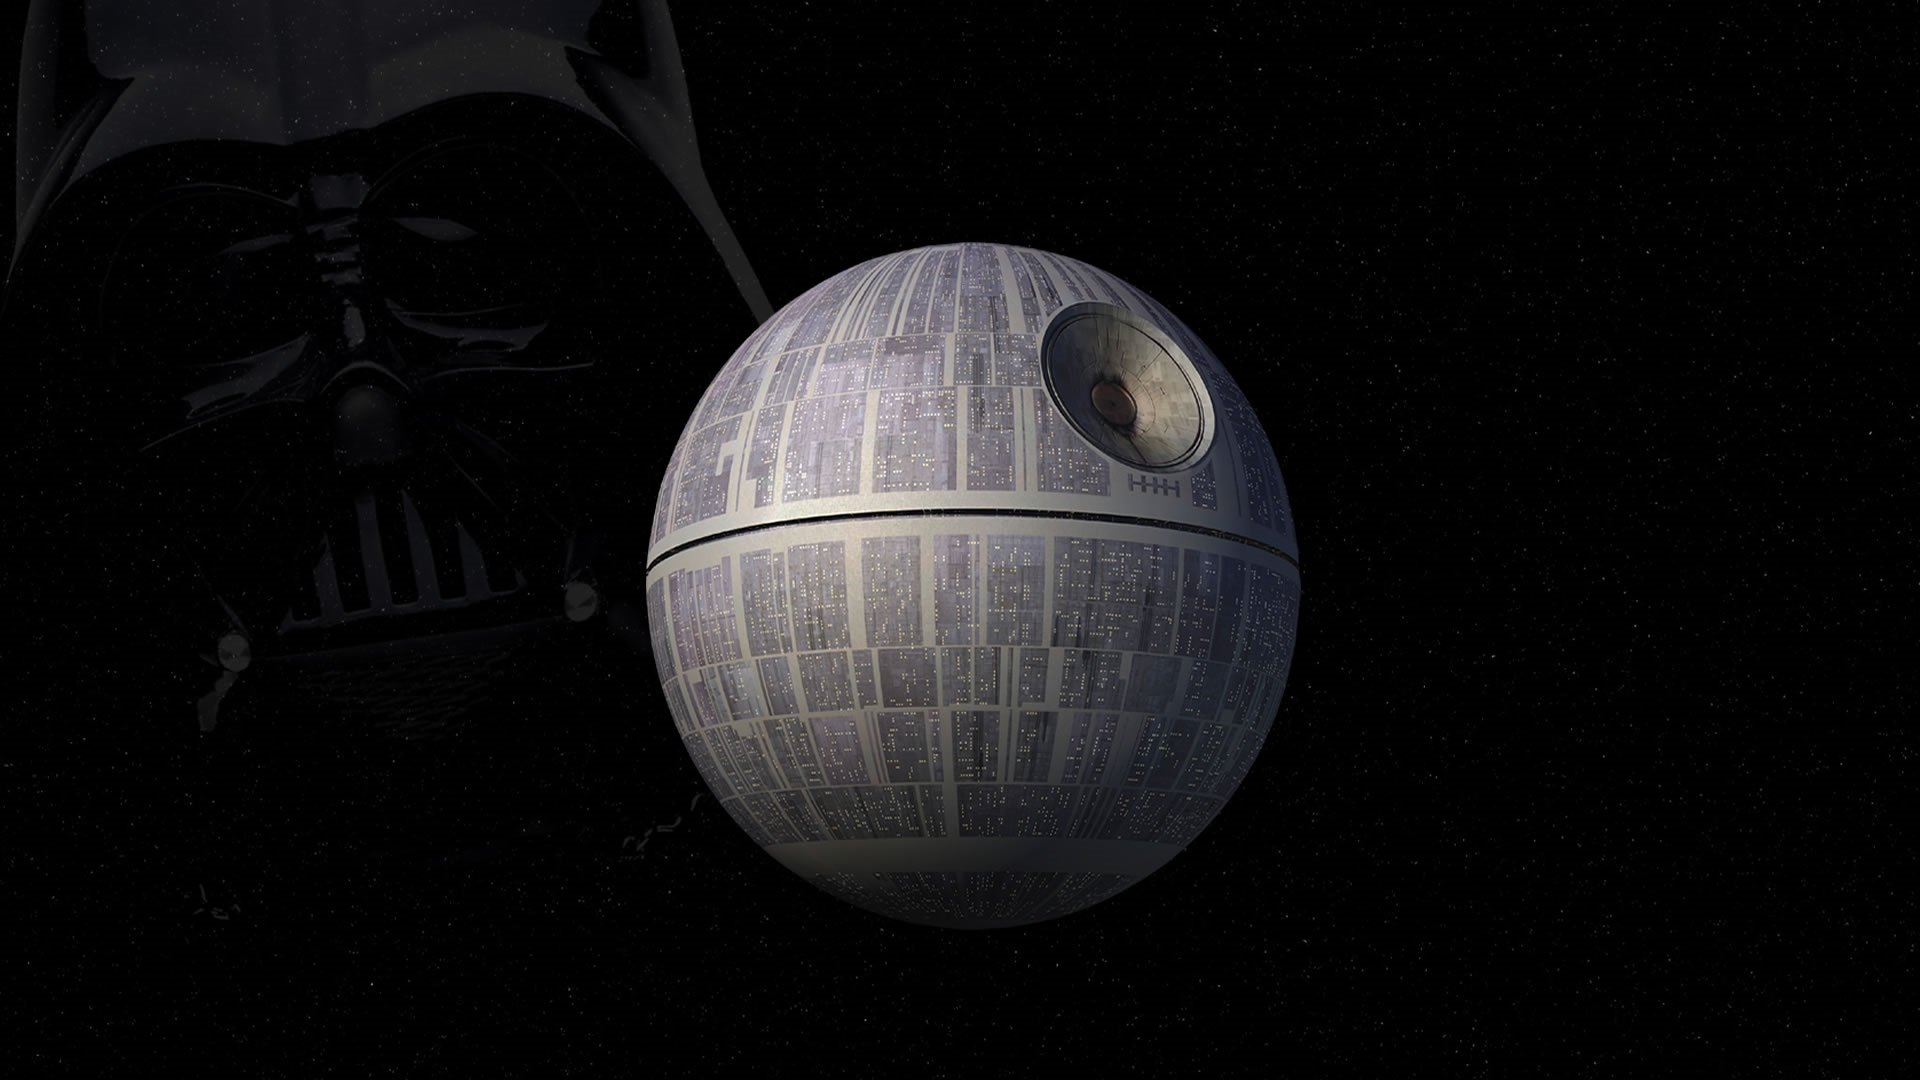 Death Star background picture